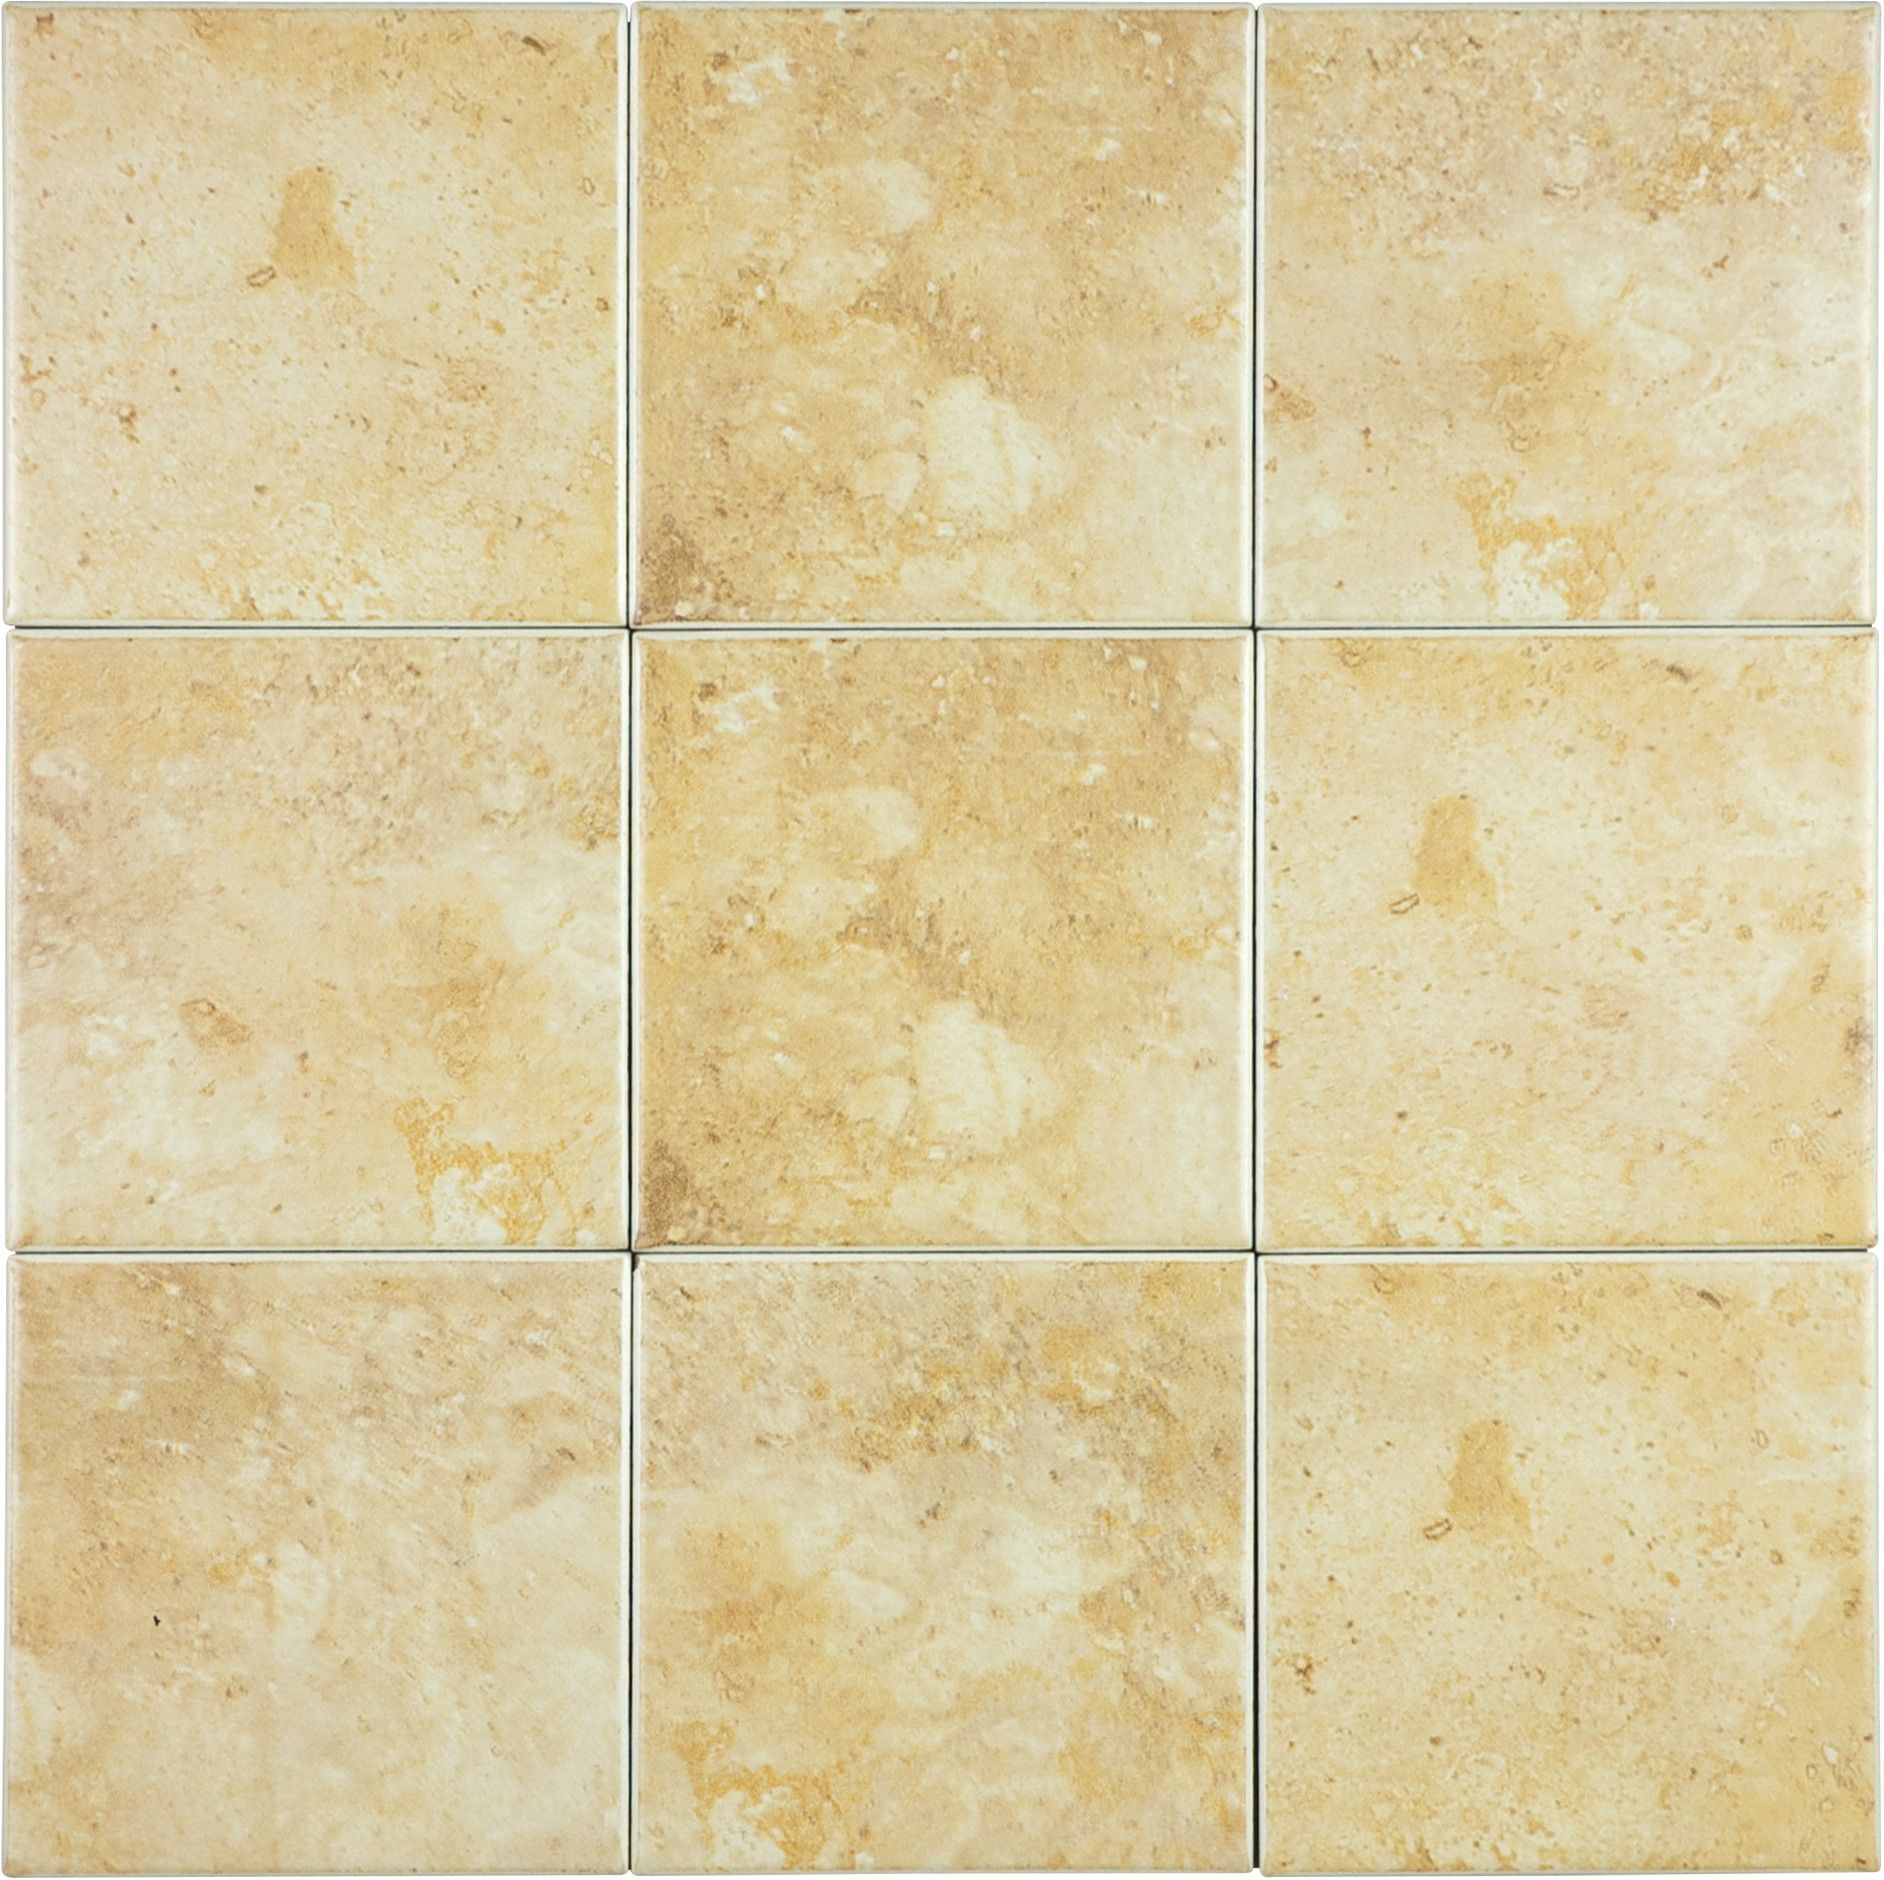 Discontinued Bathroom Tile: Ceramic Tiles Clearance